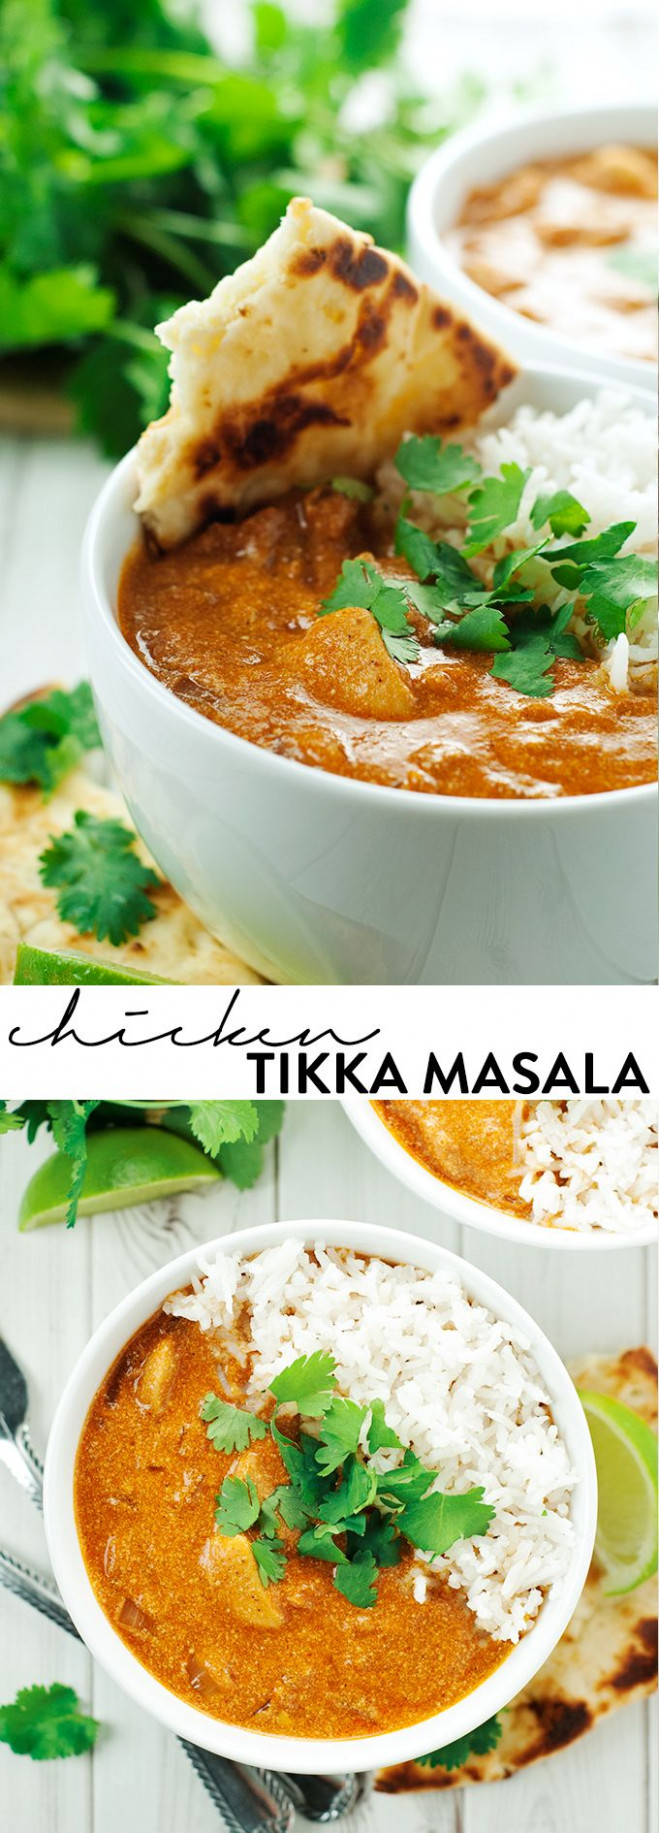 Best 25+ Chicken tikka masala ideas on Pinterest | Chicken ...